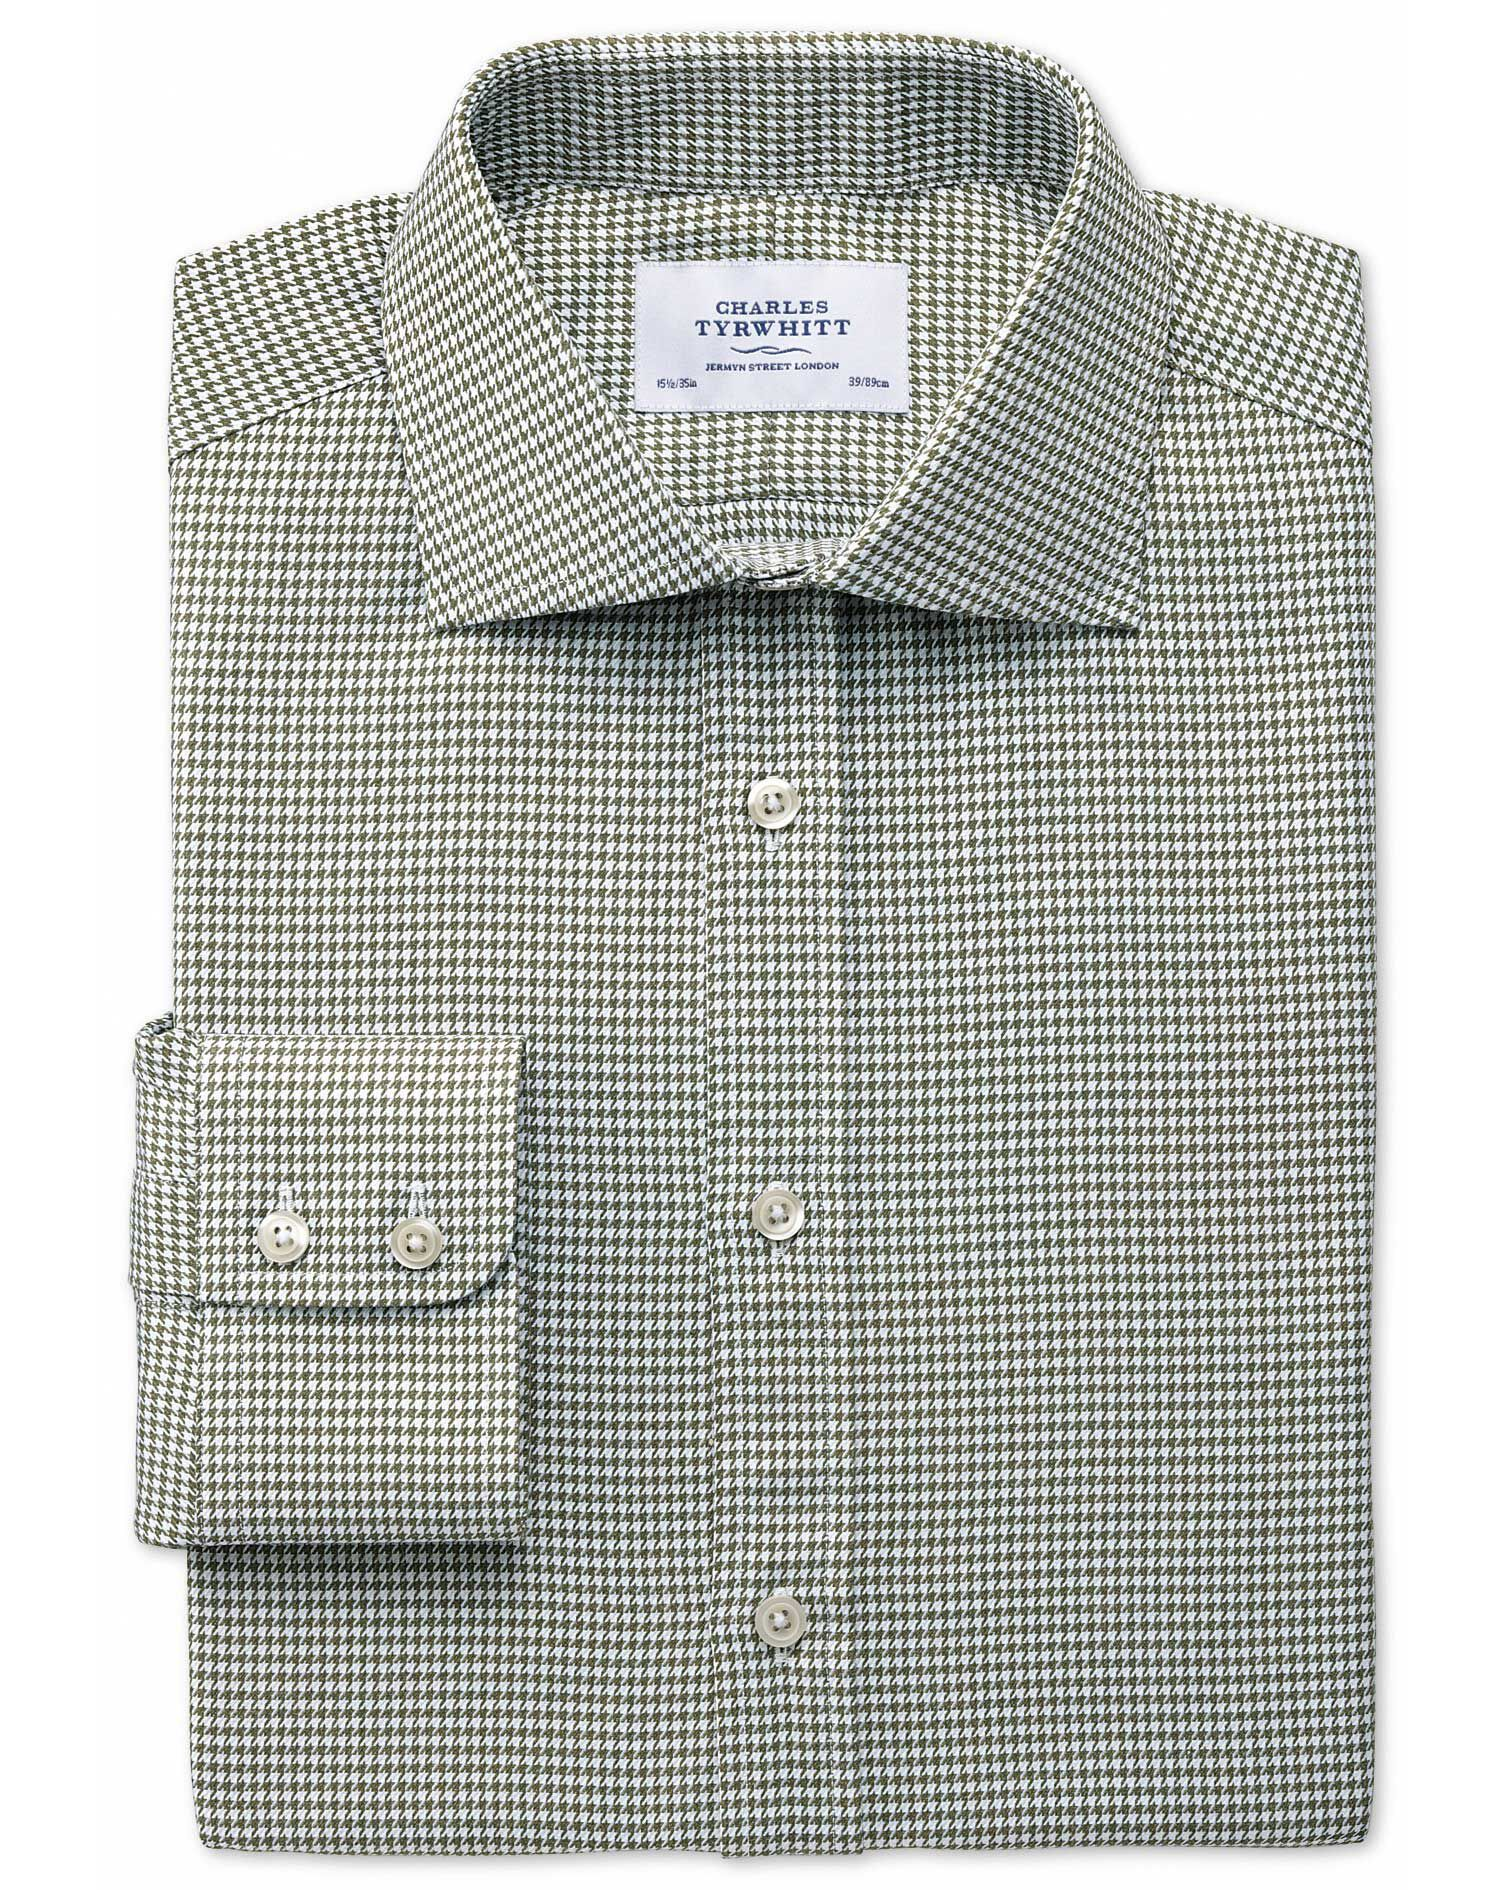 Slim Fit Semi-Cutaway Collar Melange Puppytooth Khaki Cotton Formal Shirt Single Cuff Size 15/35 by